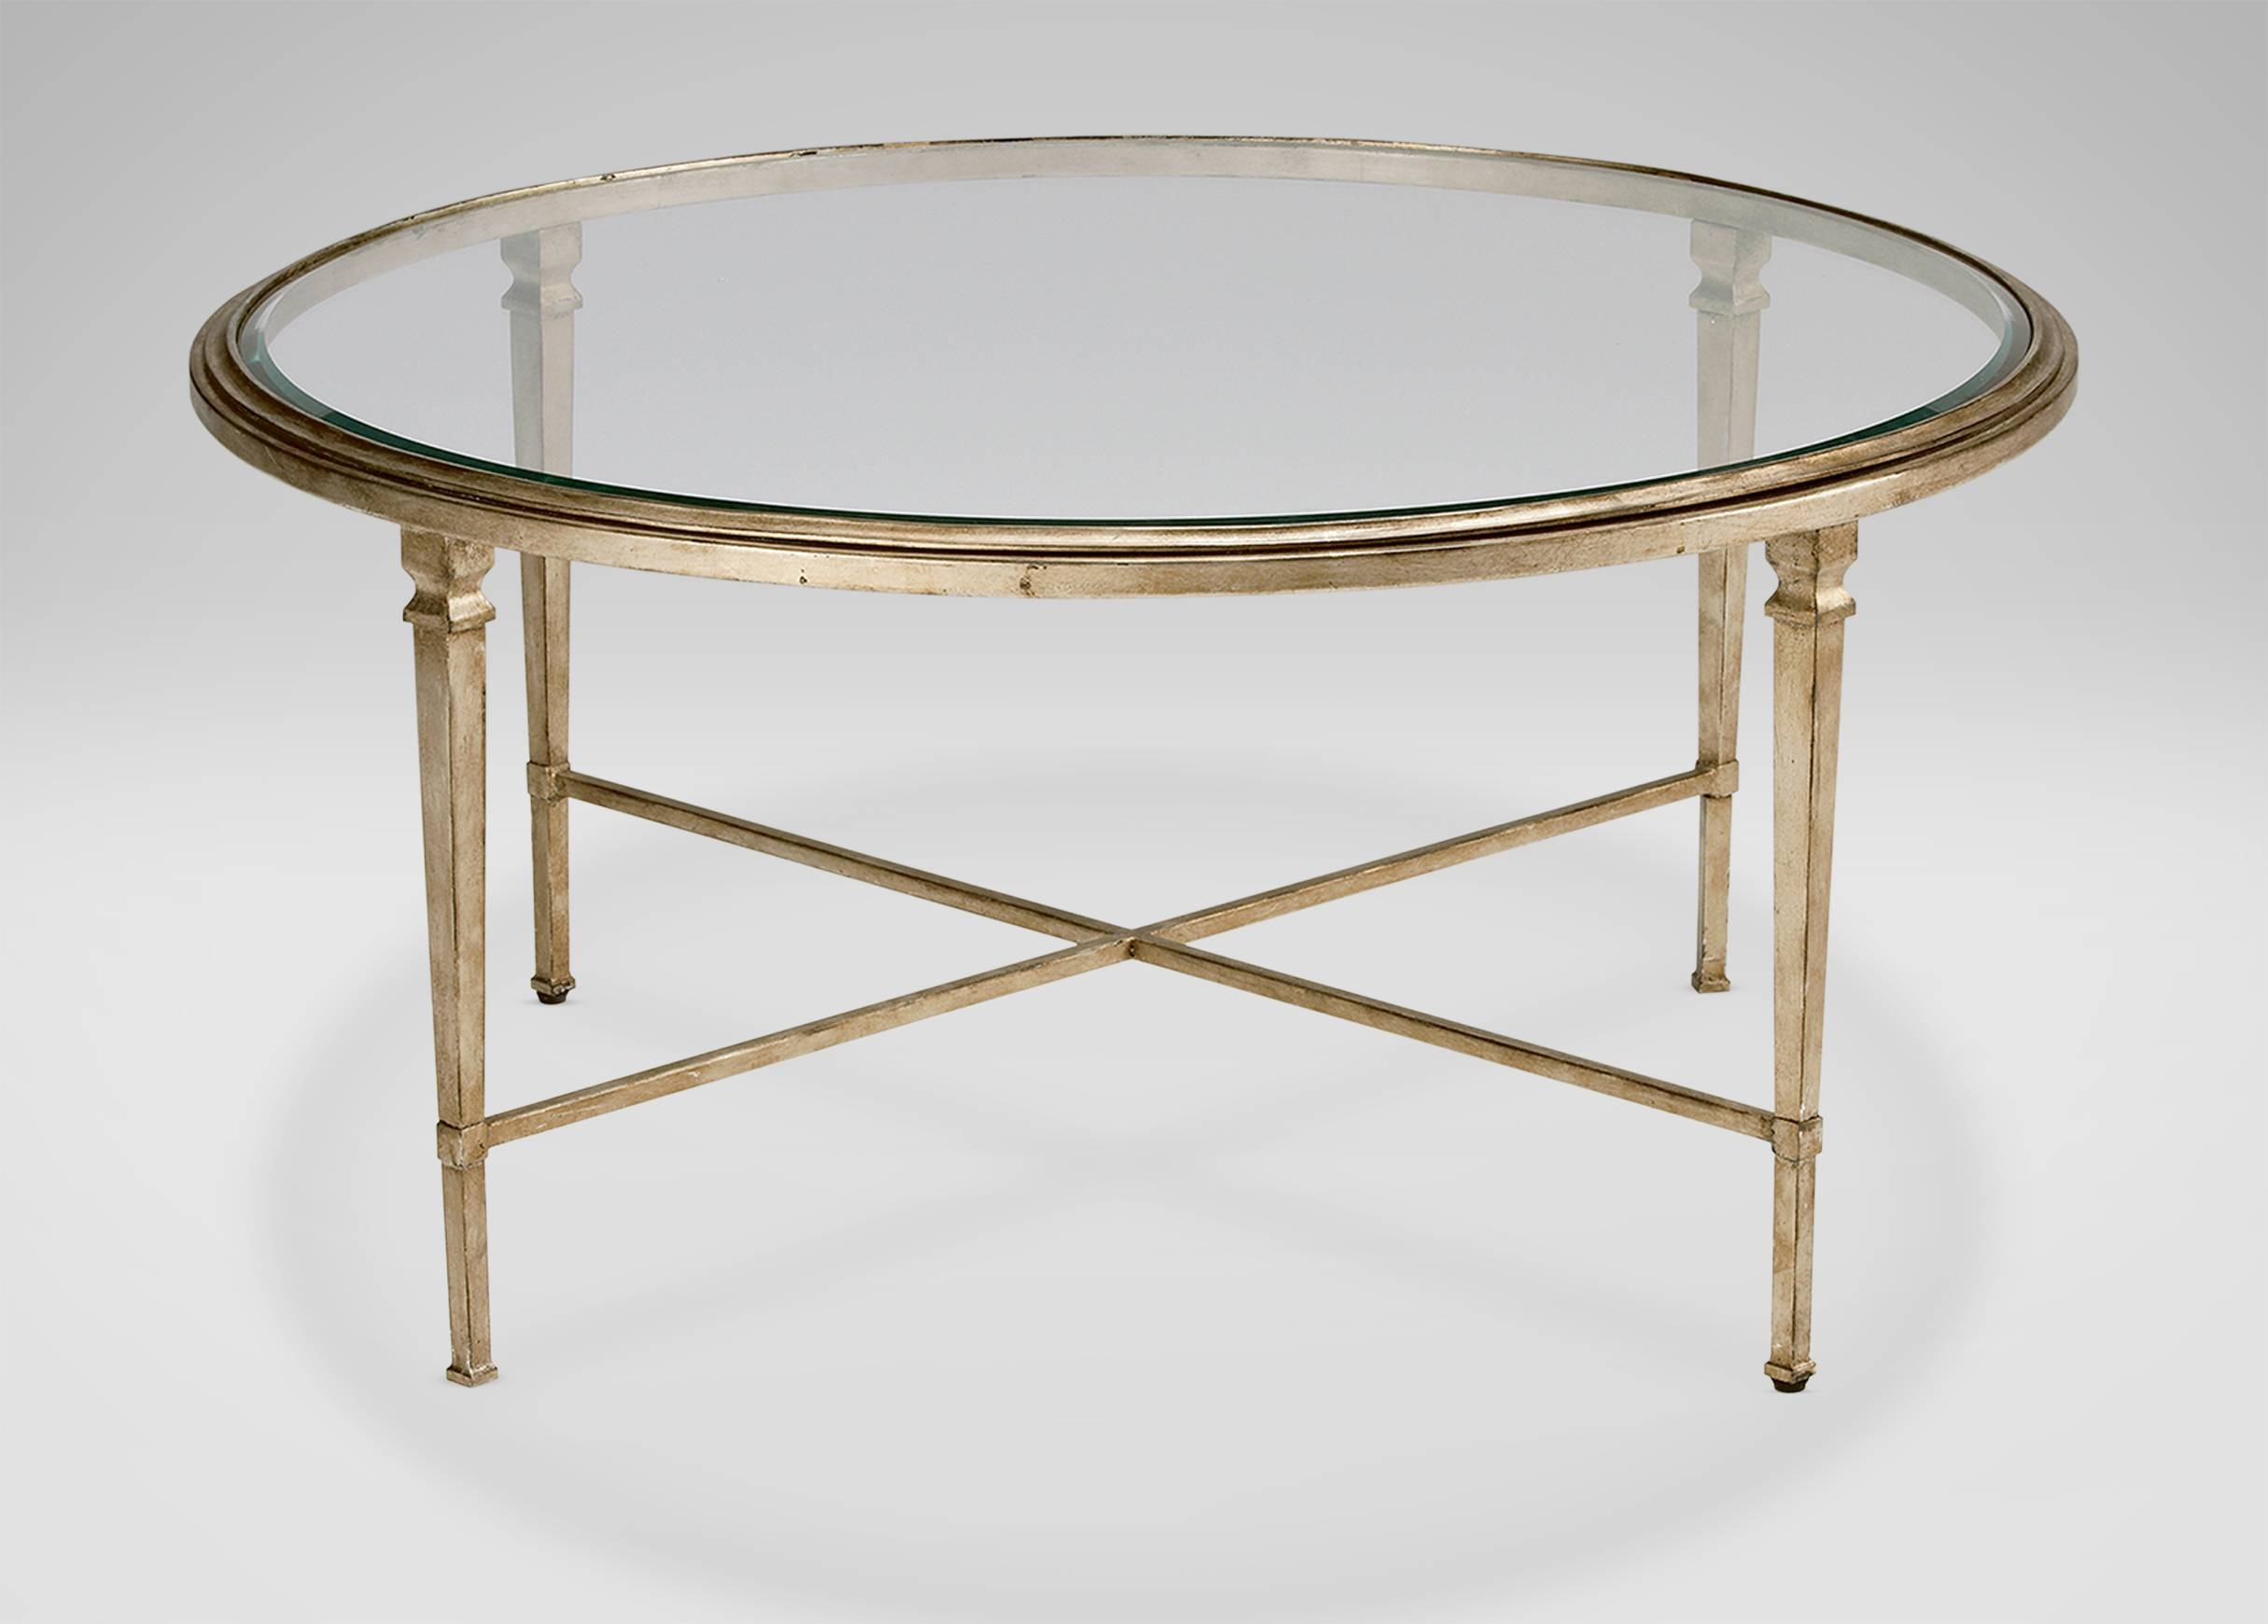 Heron Round Coffee Table | Coffee Tables with Glass Circular Coffee Tables (Image 19 of 31)